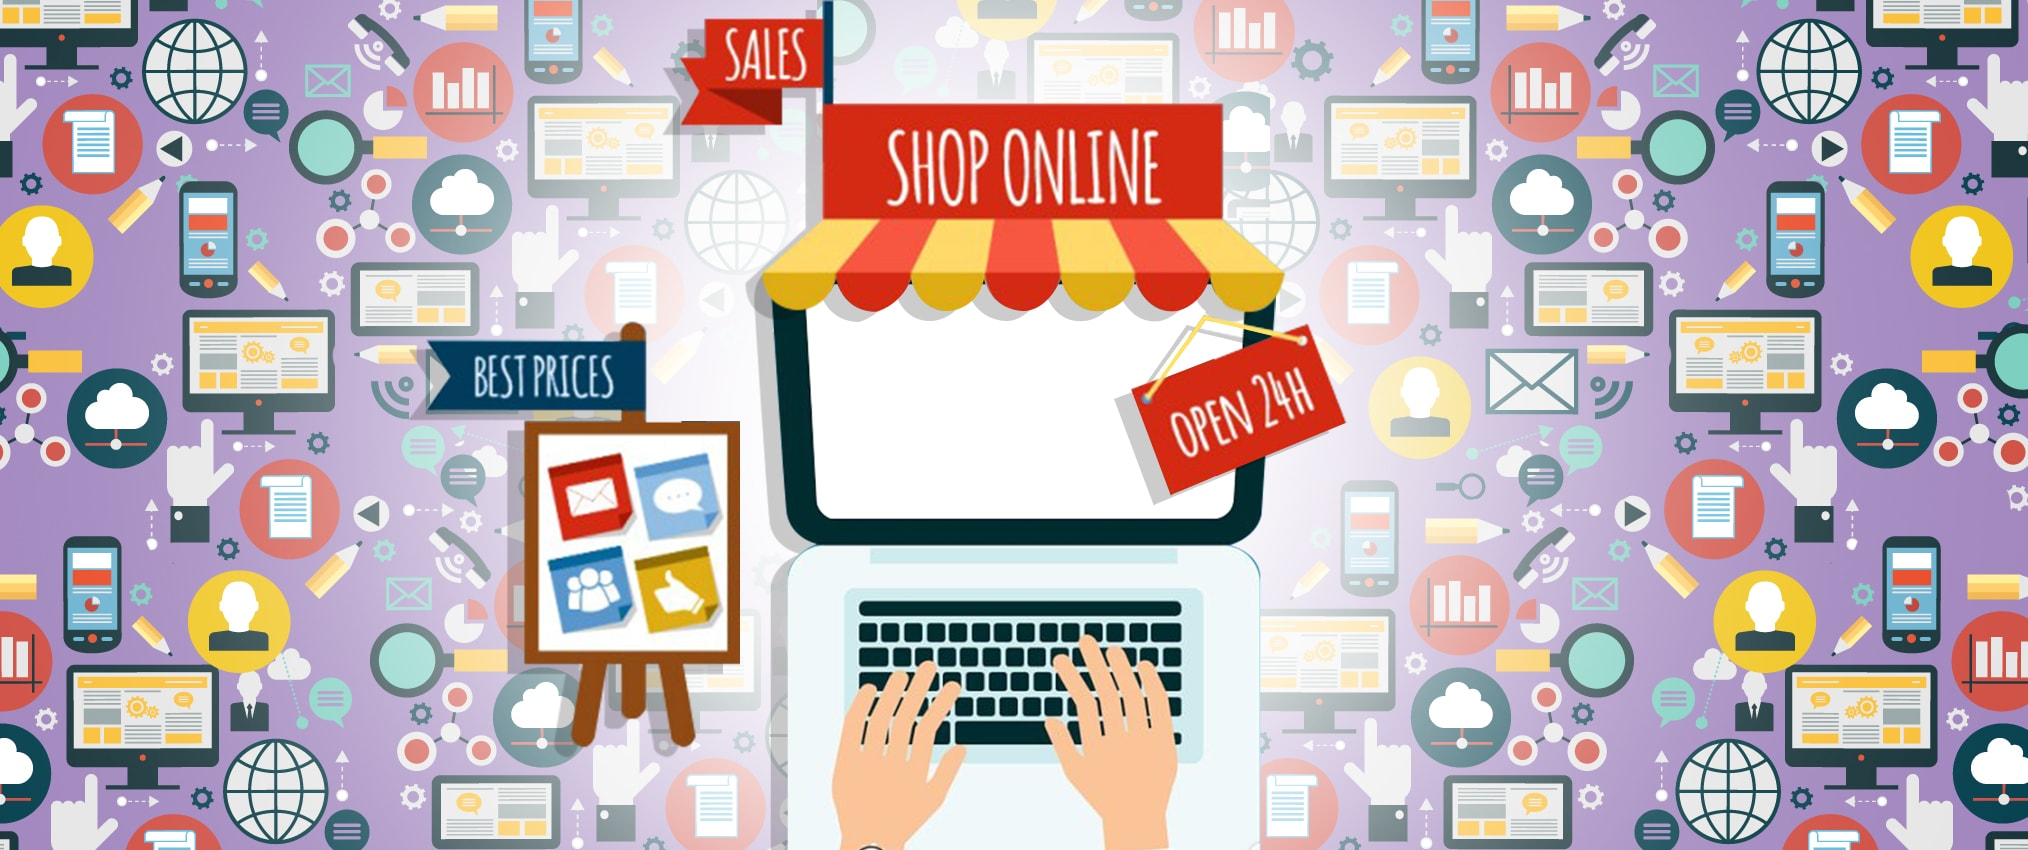 3-Ways-to-Improve-e-Commerce-Sales-with-Data-Processing